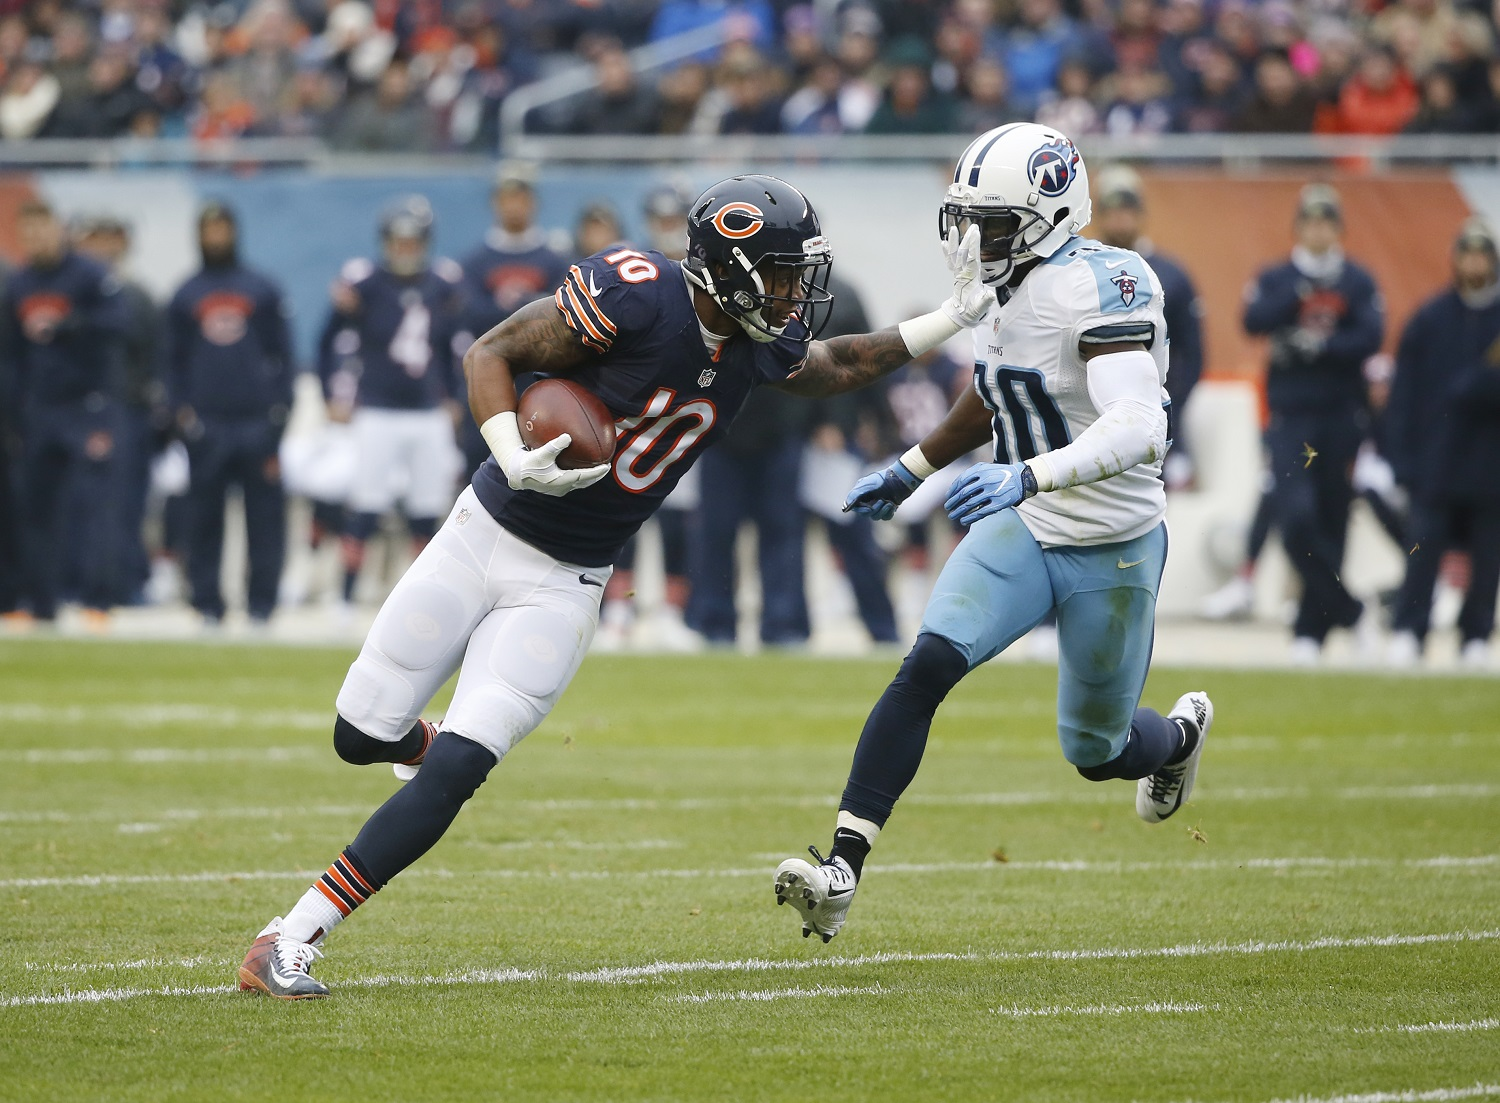 Chicago Bears wide receiver Marquess Wilson (10) runs against Tennessee Titans cornerback Jason McCourty (30) during the first half of an NFL football game, Sunday, Nov. 27, 2016, in Chicago. (AP Photo/Charles Rex Arbogast)